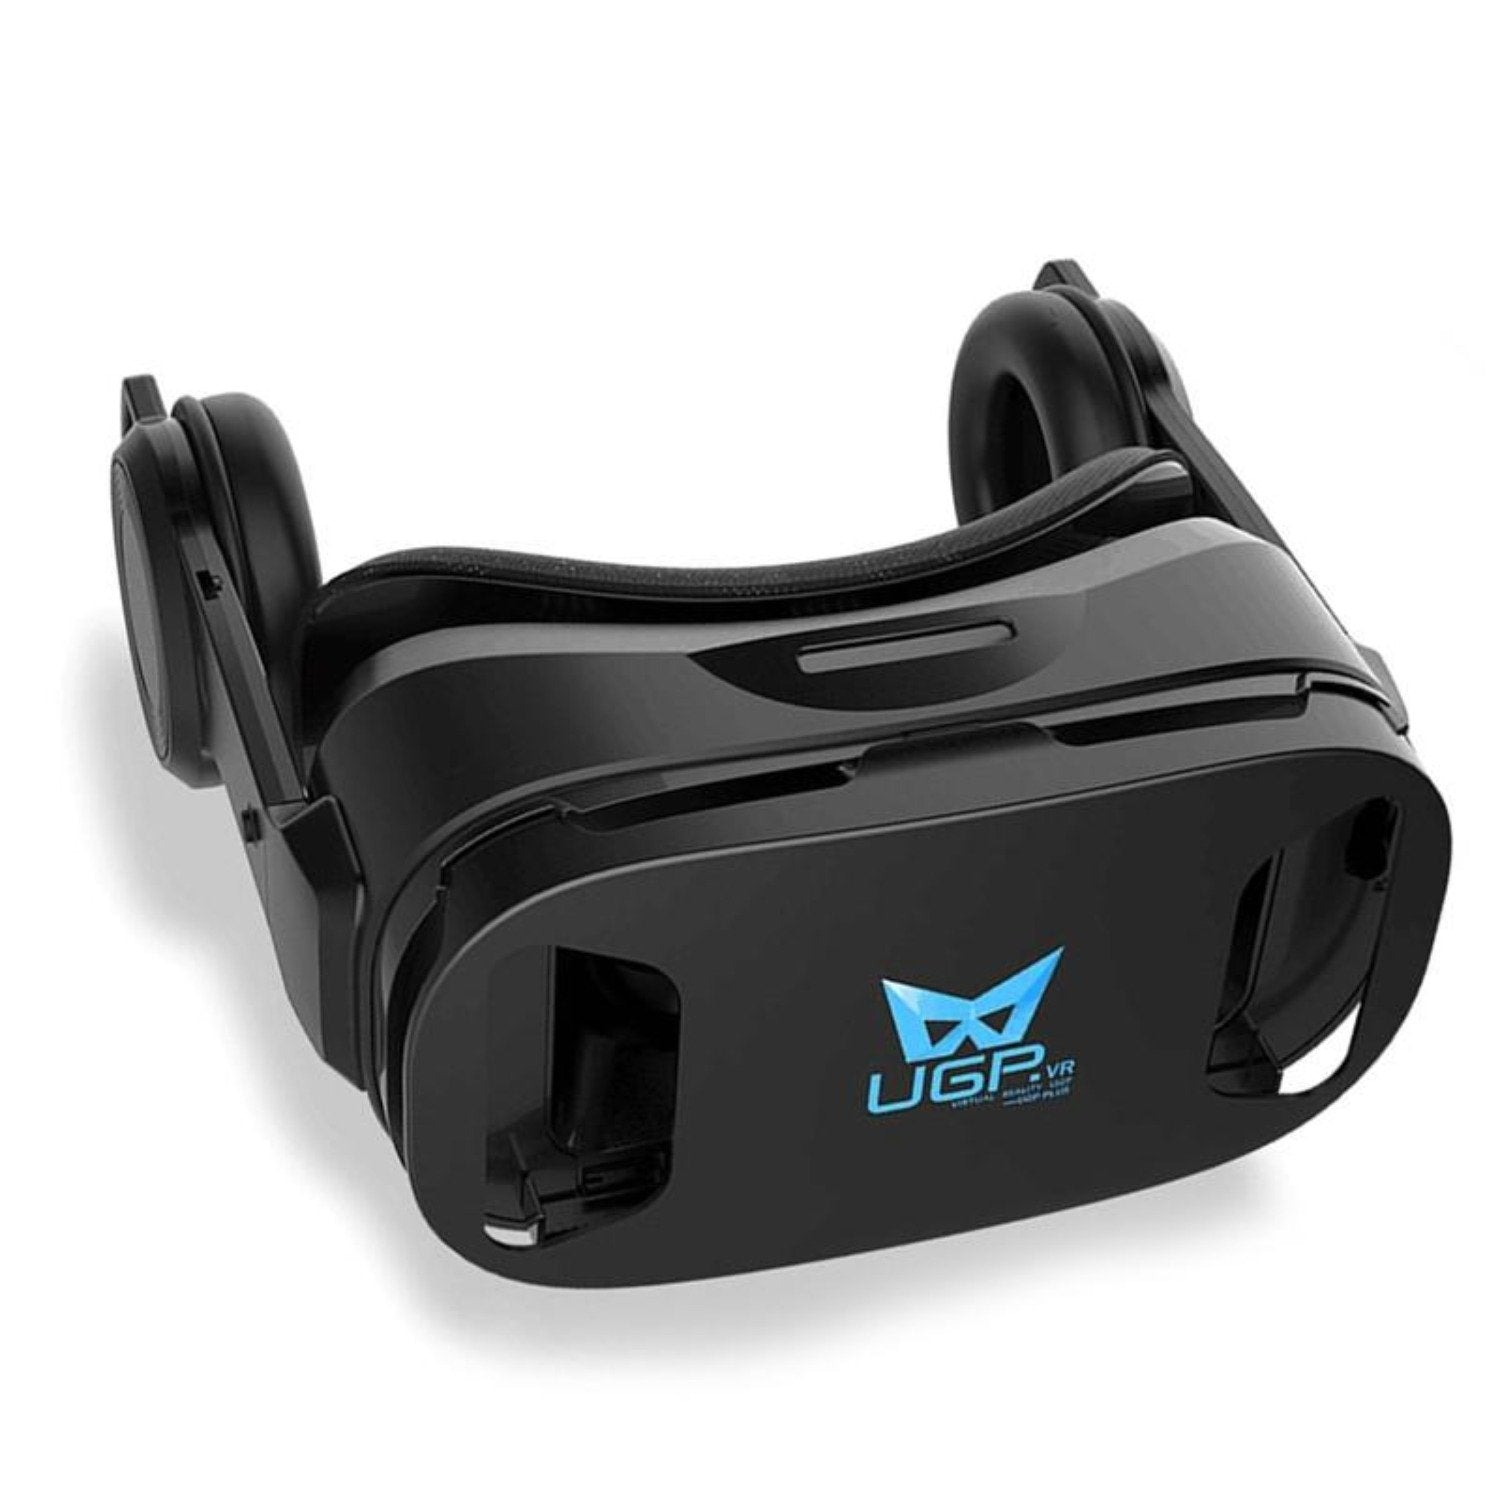 3D VR Gaming & Movies Headset with Build in Stereo Headphone